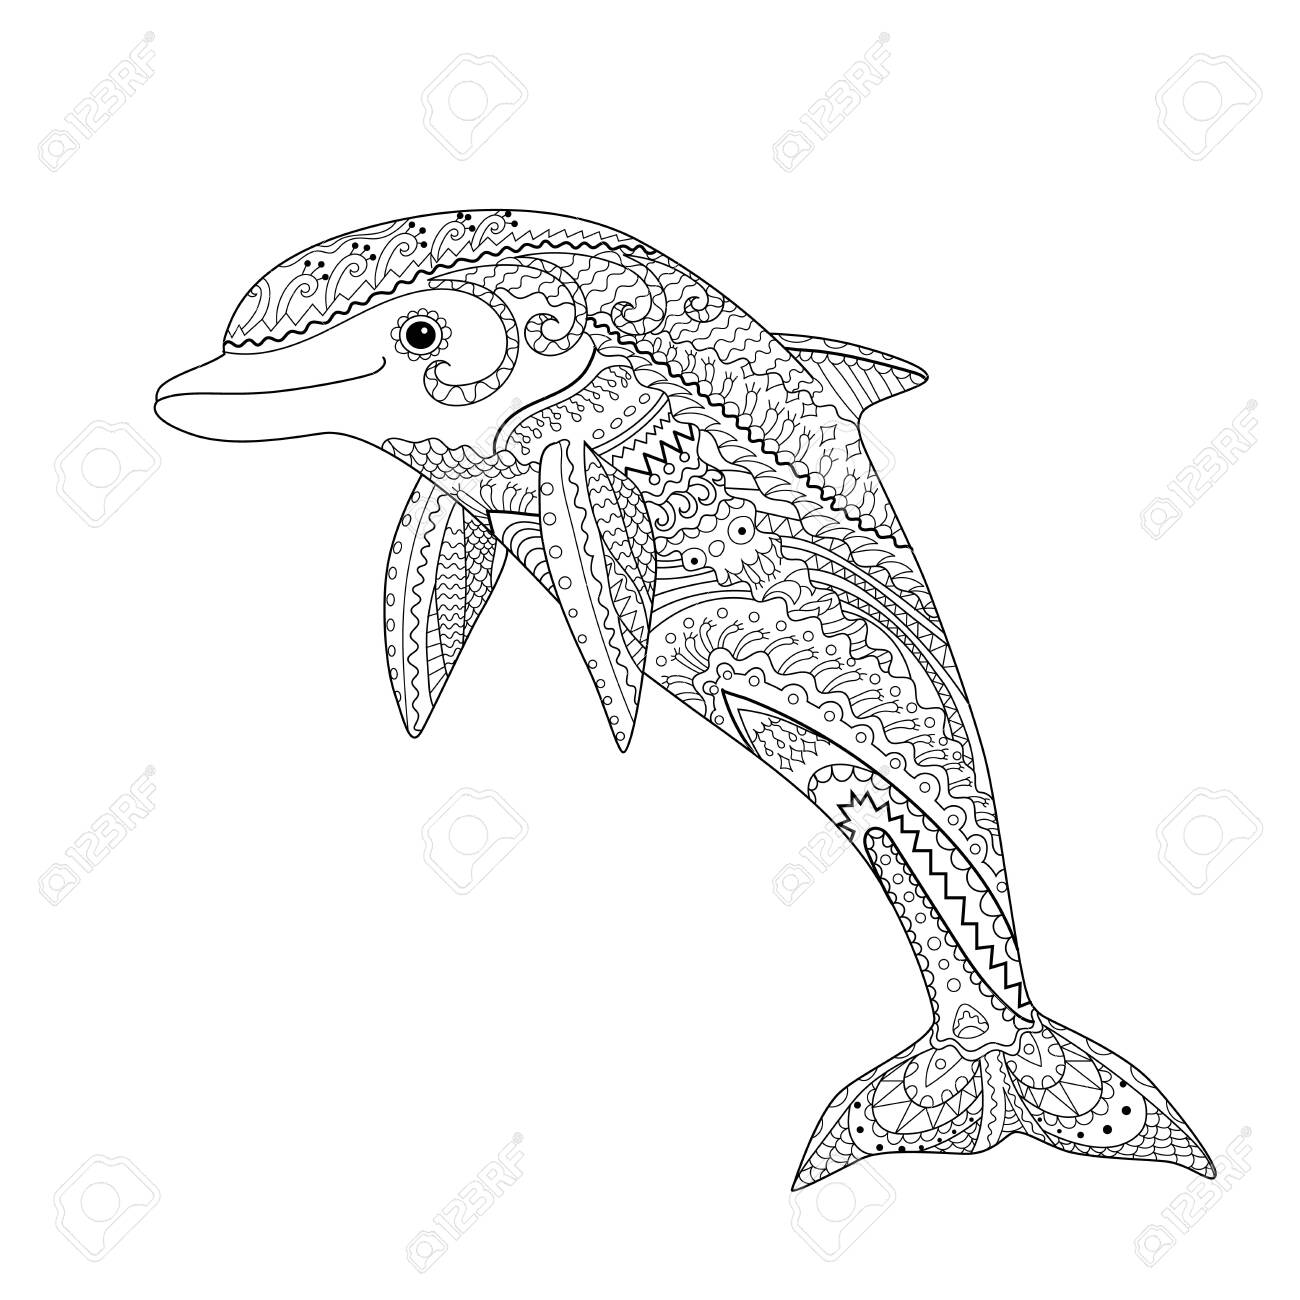 Happy dolphin with high details. Adult antistress coloring page. Black white hand drawn doodle oceanic animal for art therapy. Sketch for tattoo, poster, print, t-shirt Vector illustration - 129009233